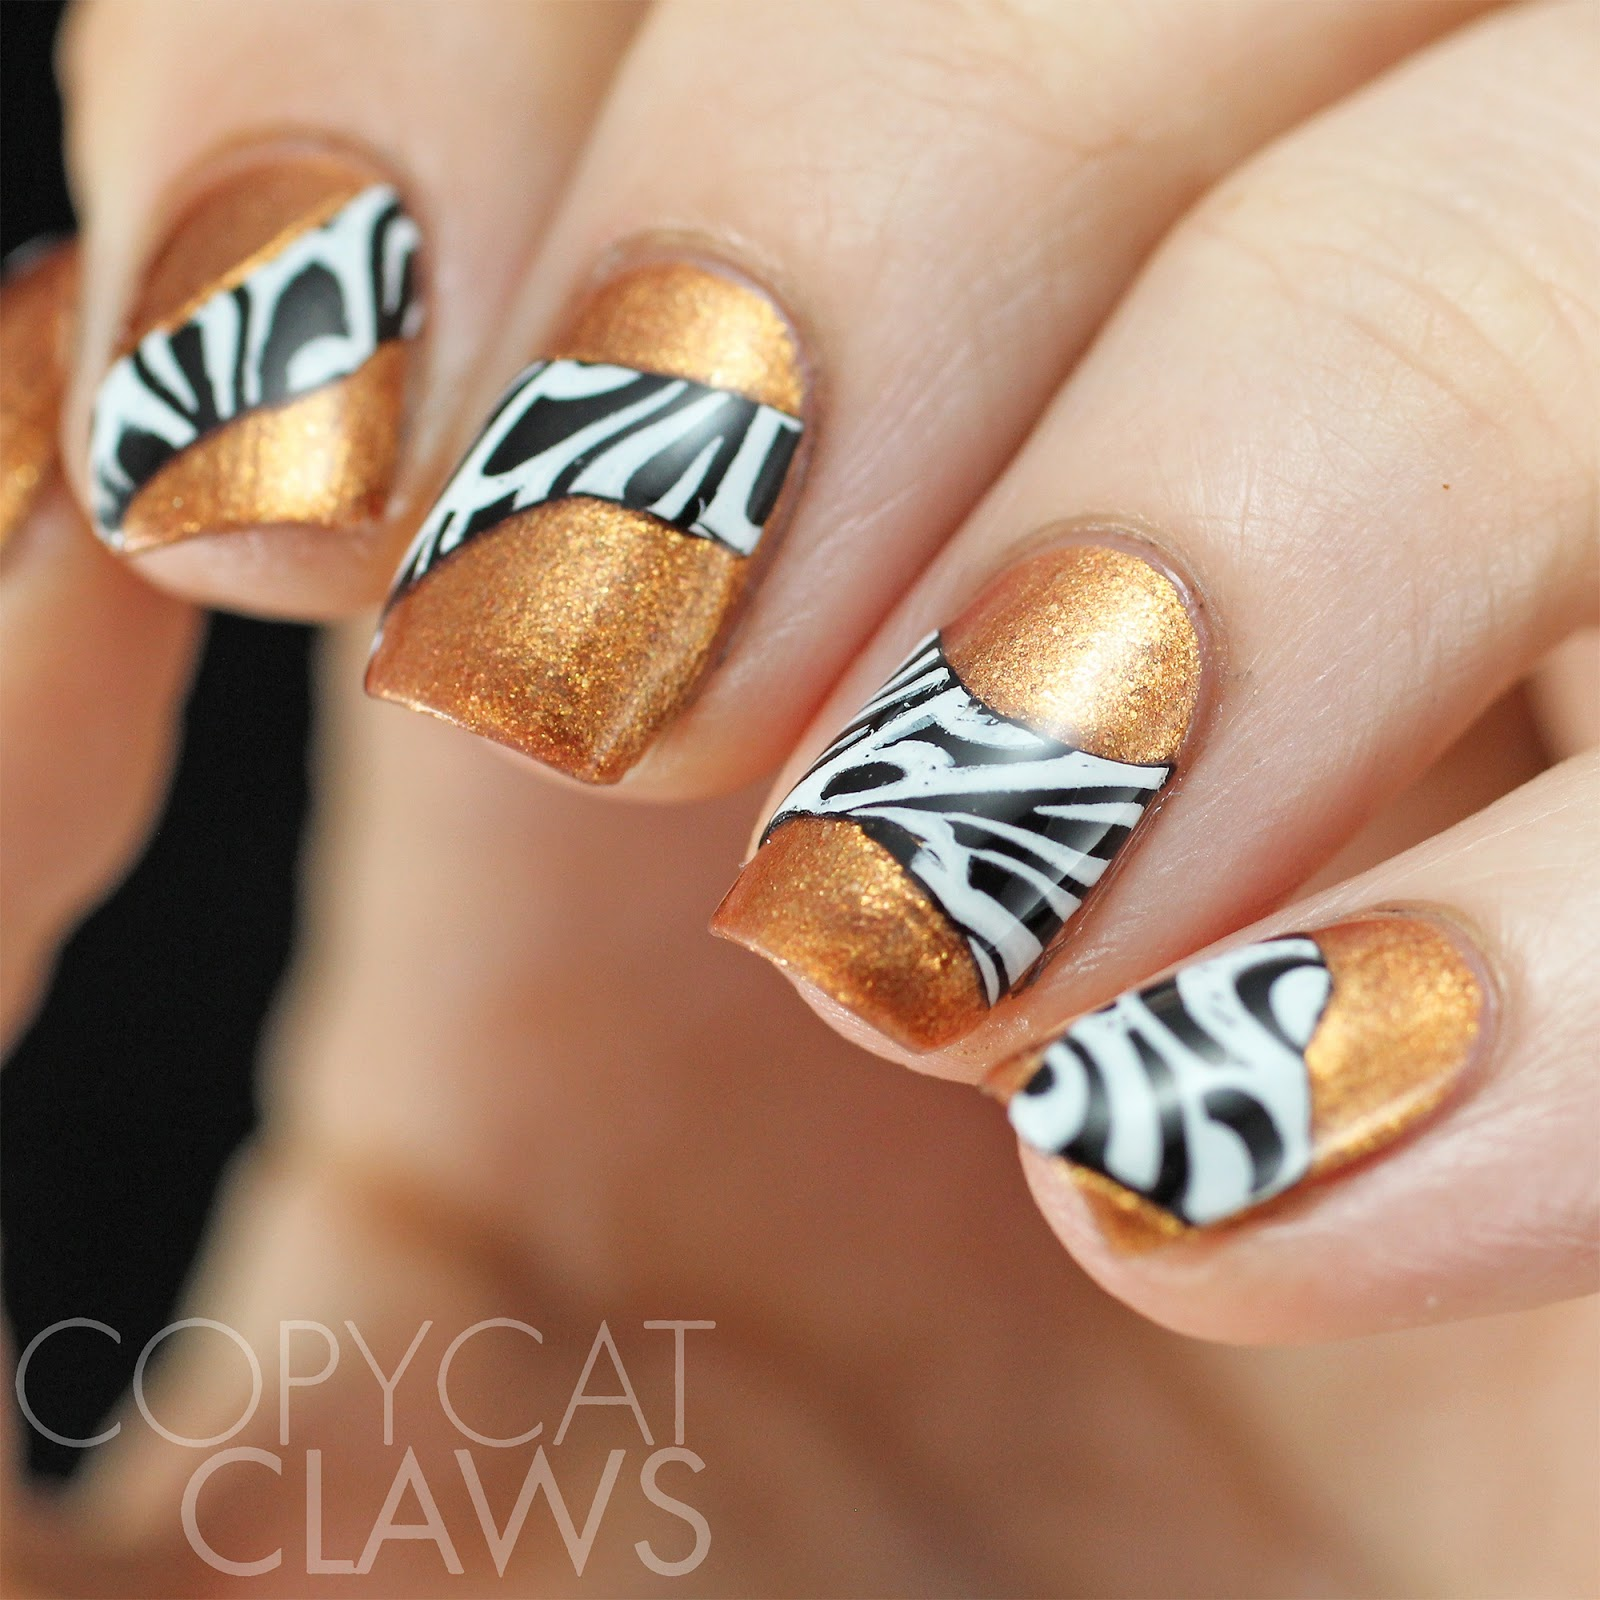 Copycat Claws: 40 Great Nail Art Ideas - Fashion